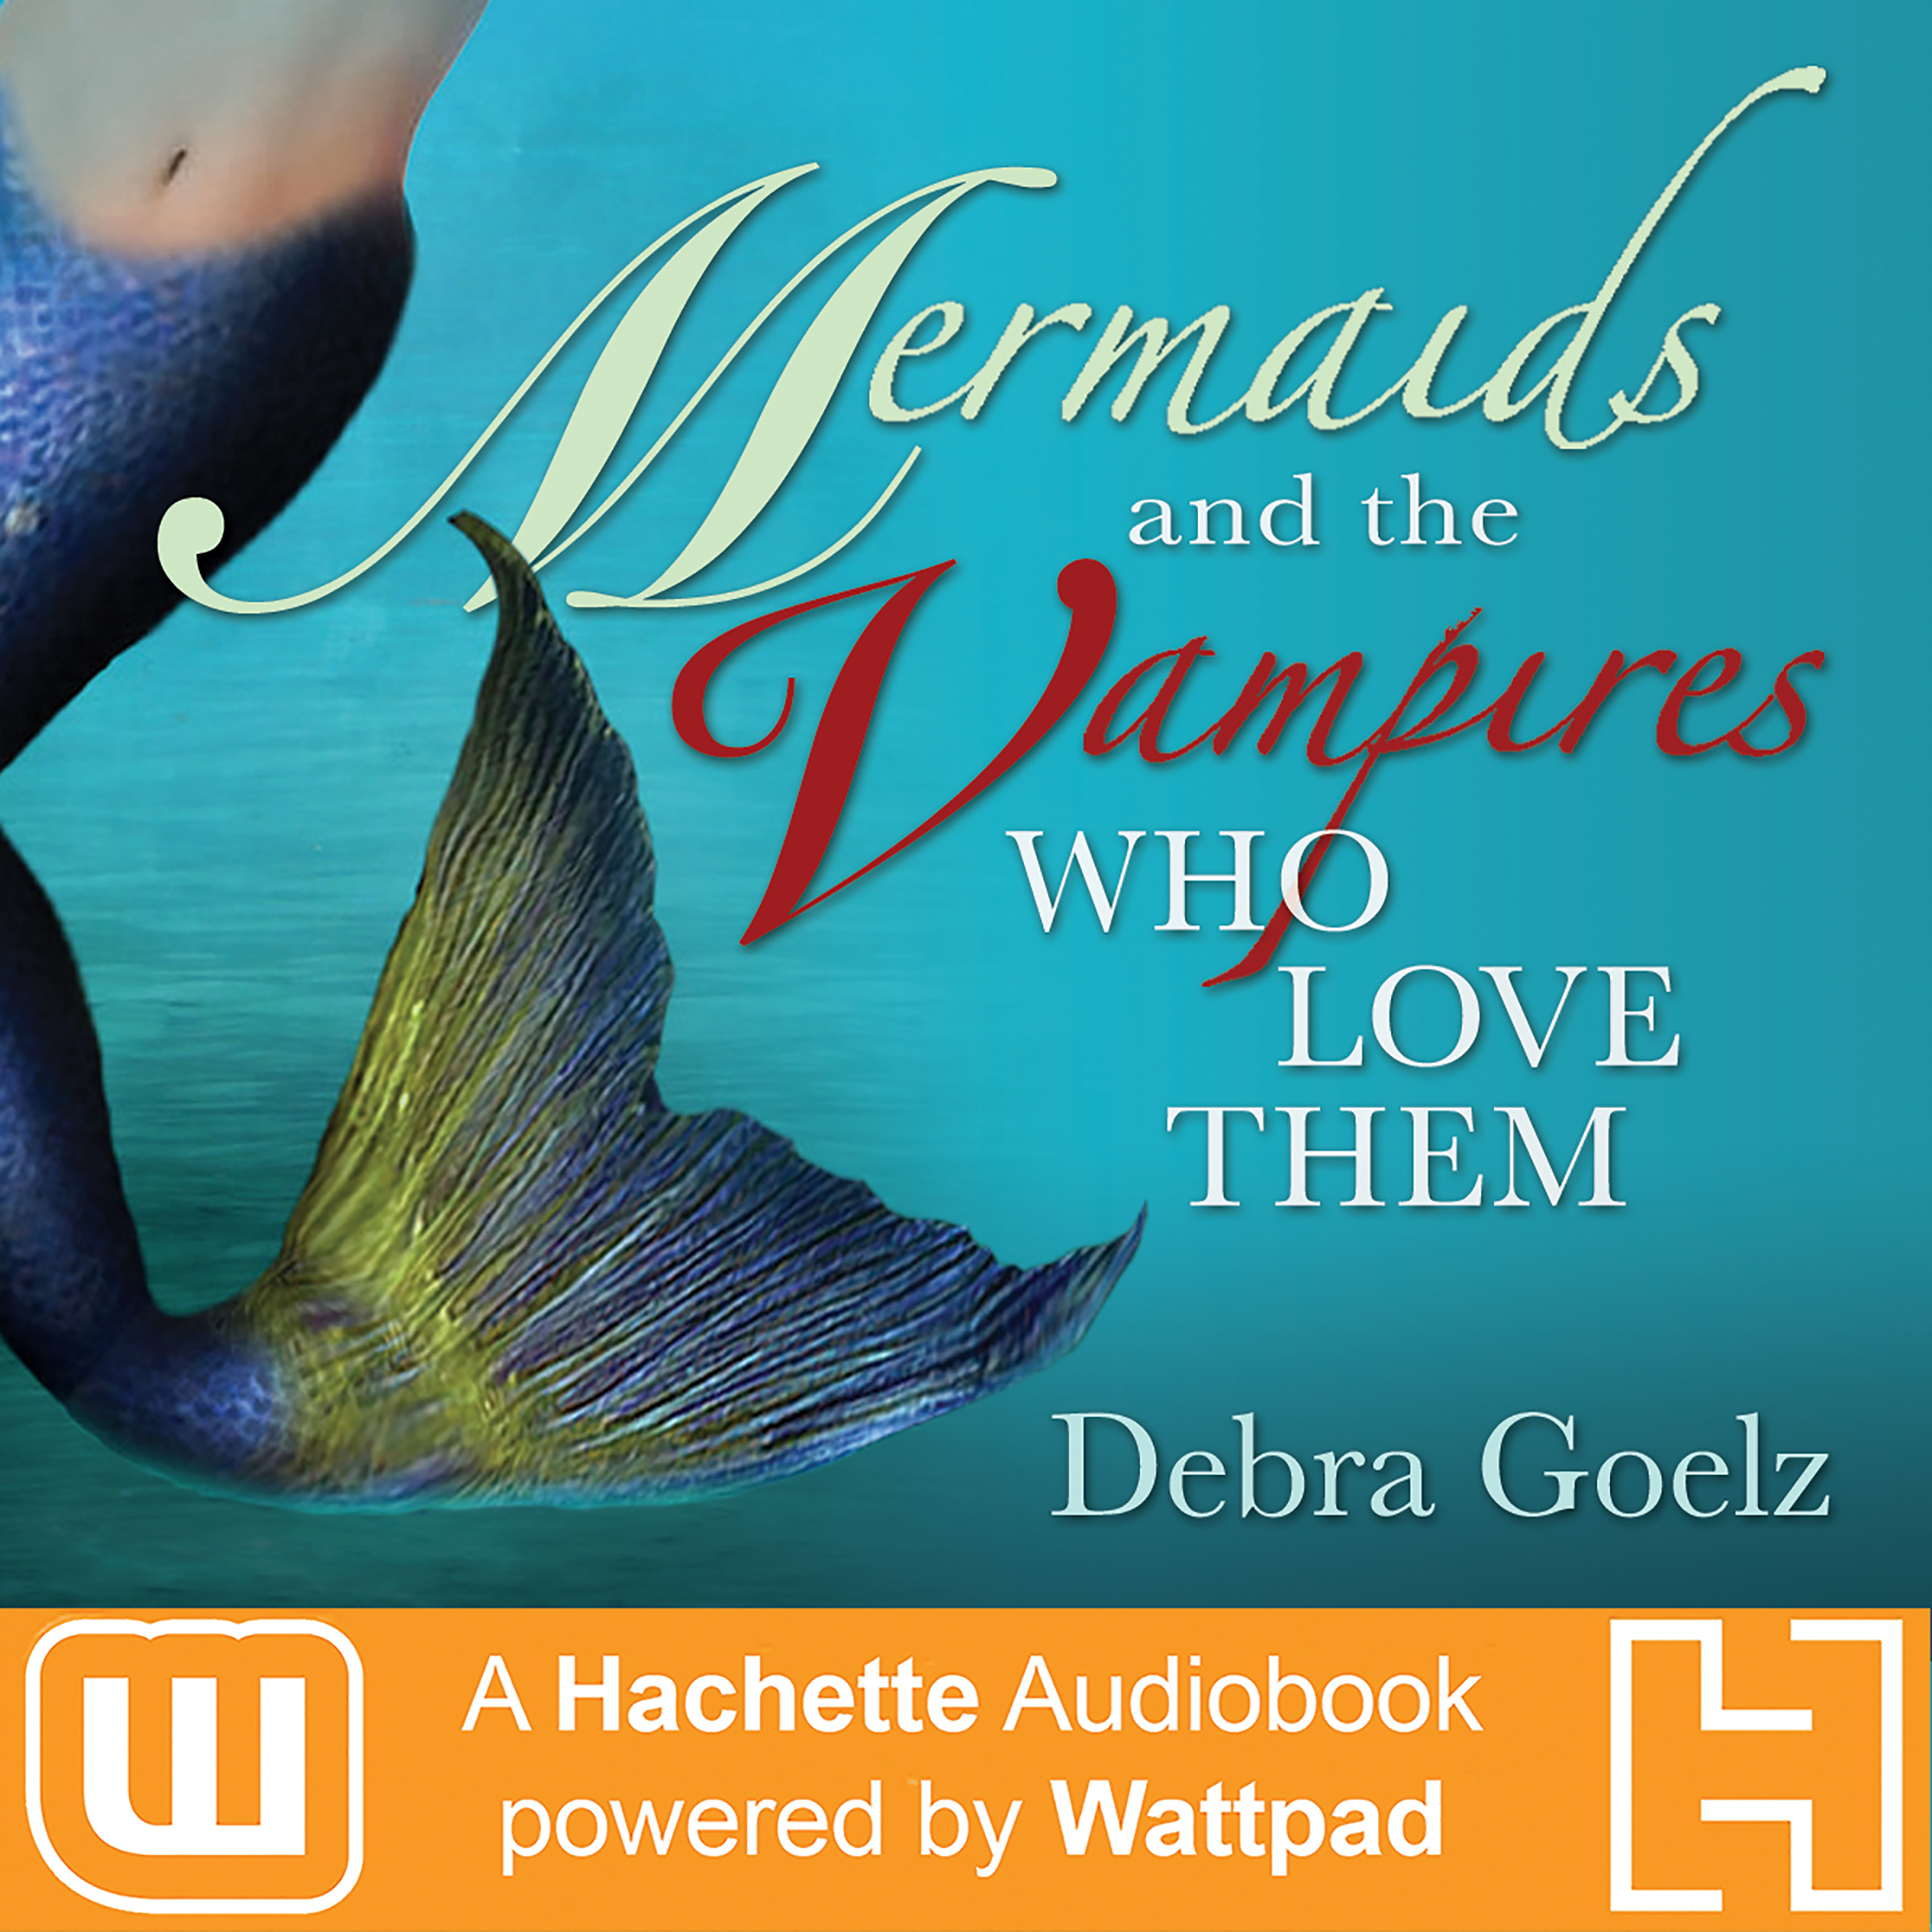 Printable Mermaids And The Vampires Who Love Them: A Hachette Audiobook powered by Wattpad Production Audiobook Cover Art